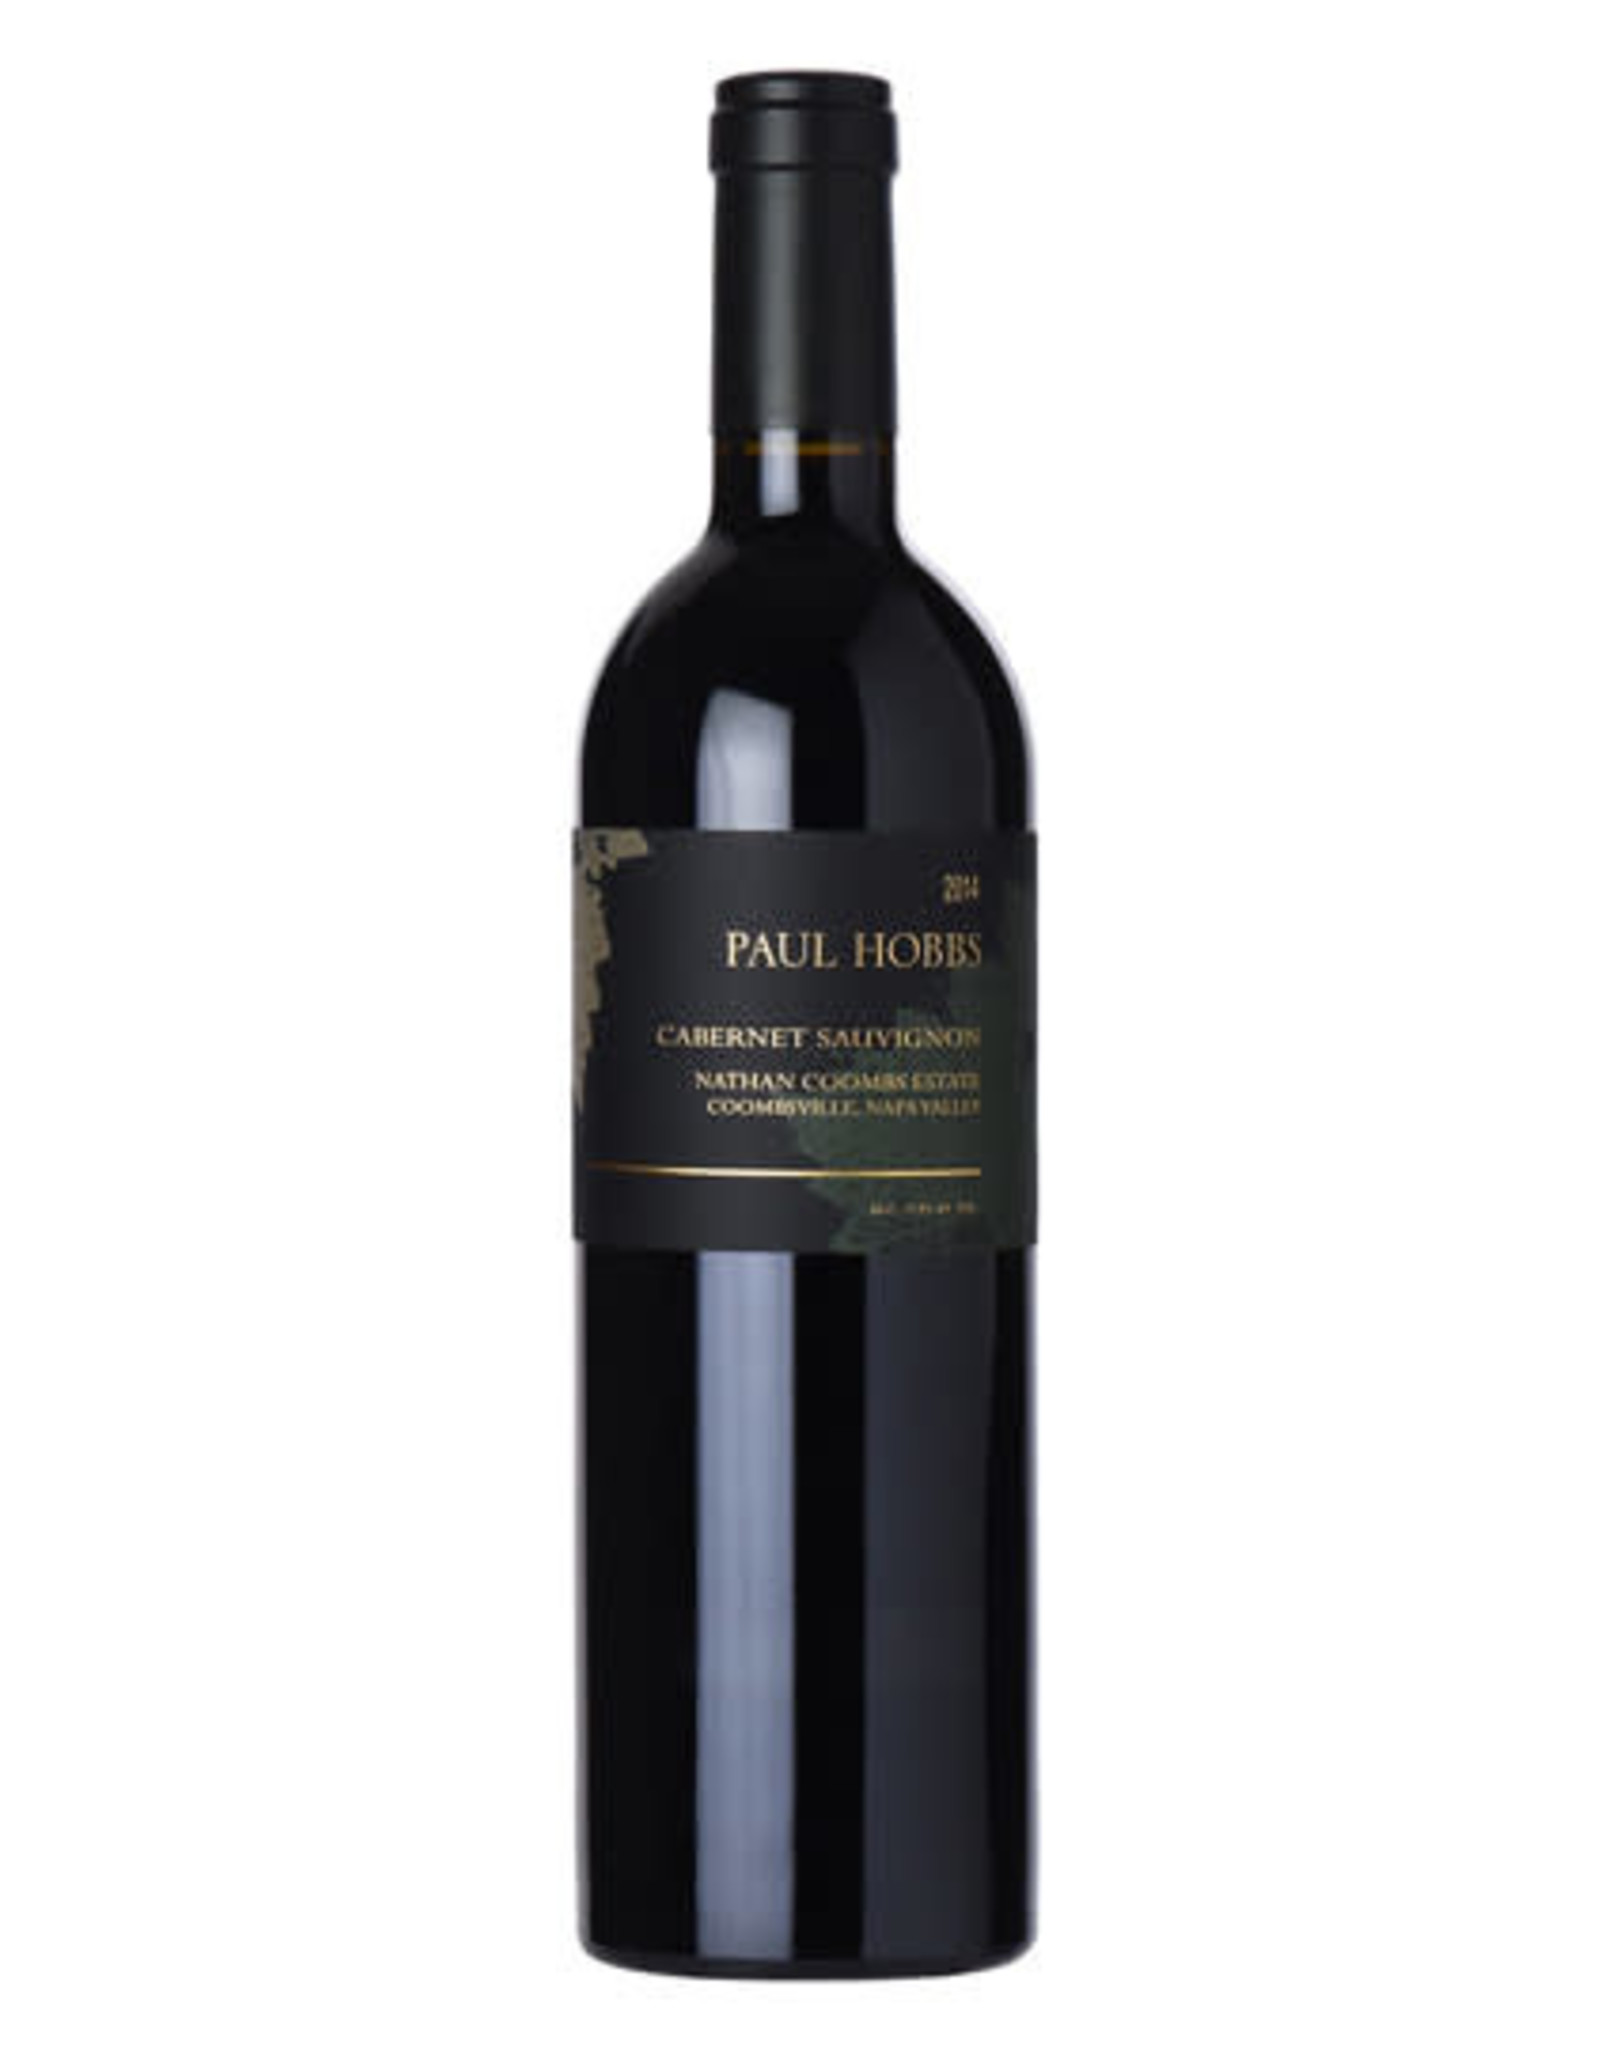 Paul Hobbs 'Nathan Coombs Estate' Coombsville, Napa Valley, Cabernet Sauvignon 2014